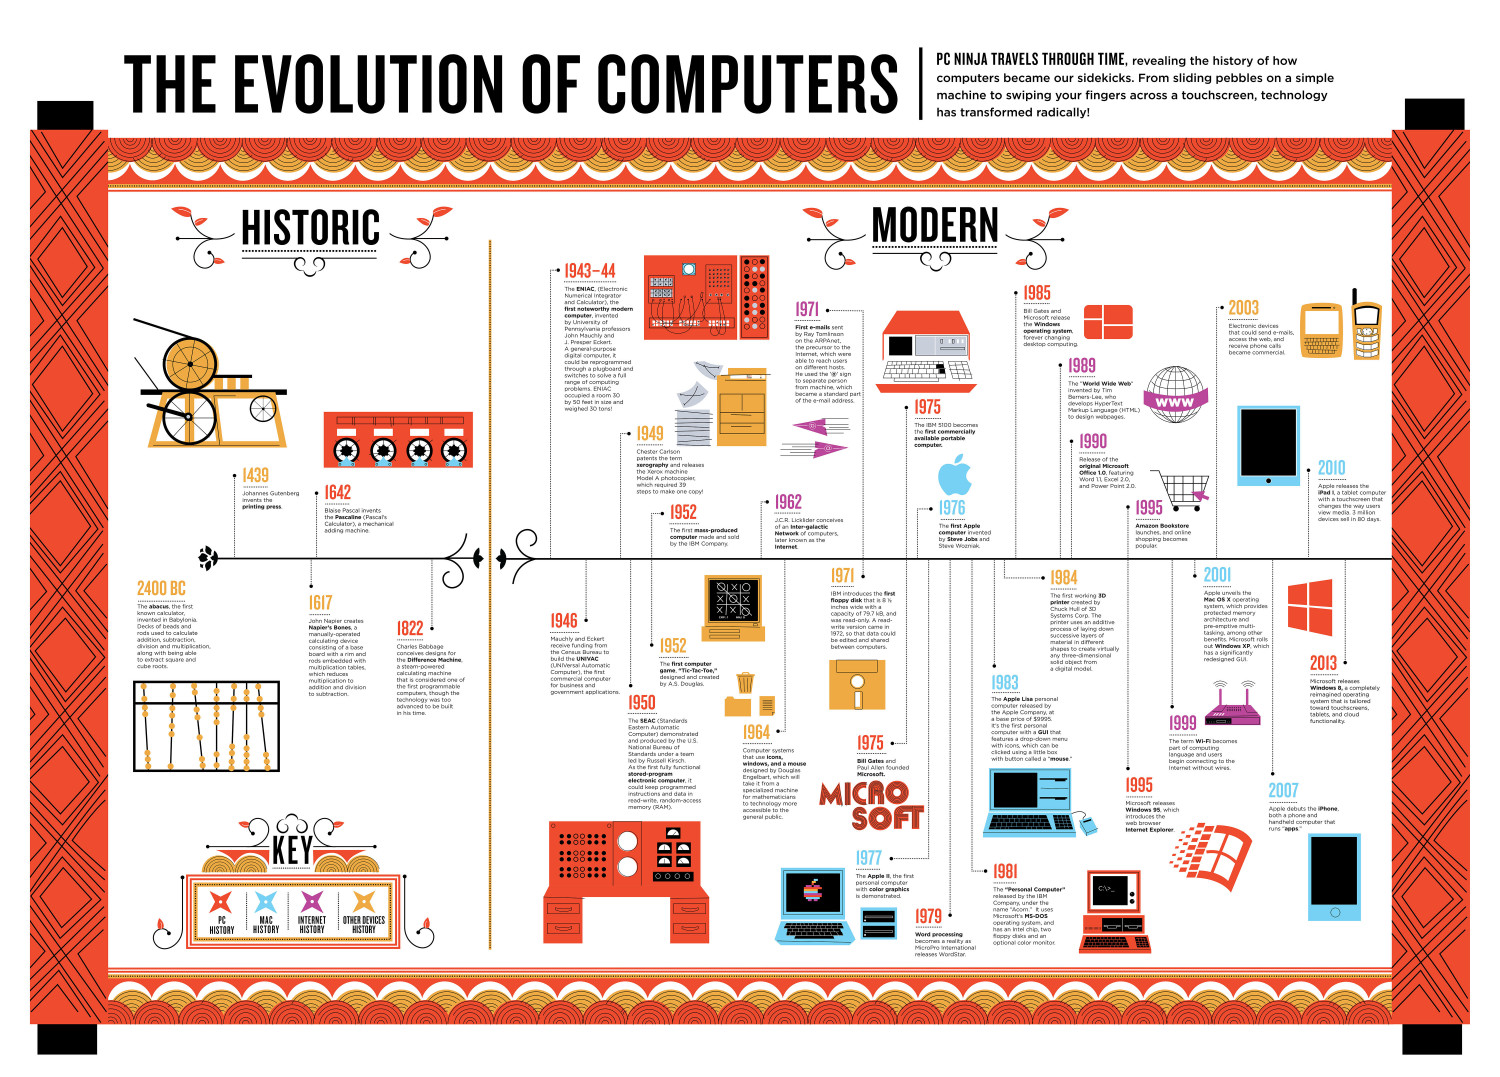 an analysis of the computer technology evolution in the united states Discuss the impact of computer technology on the evolution of hrm this historical analysis will demon - try in the united states.